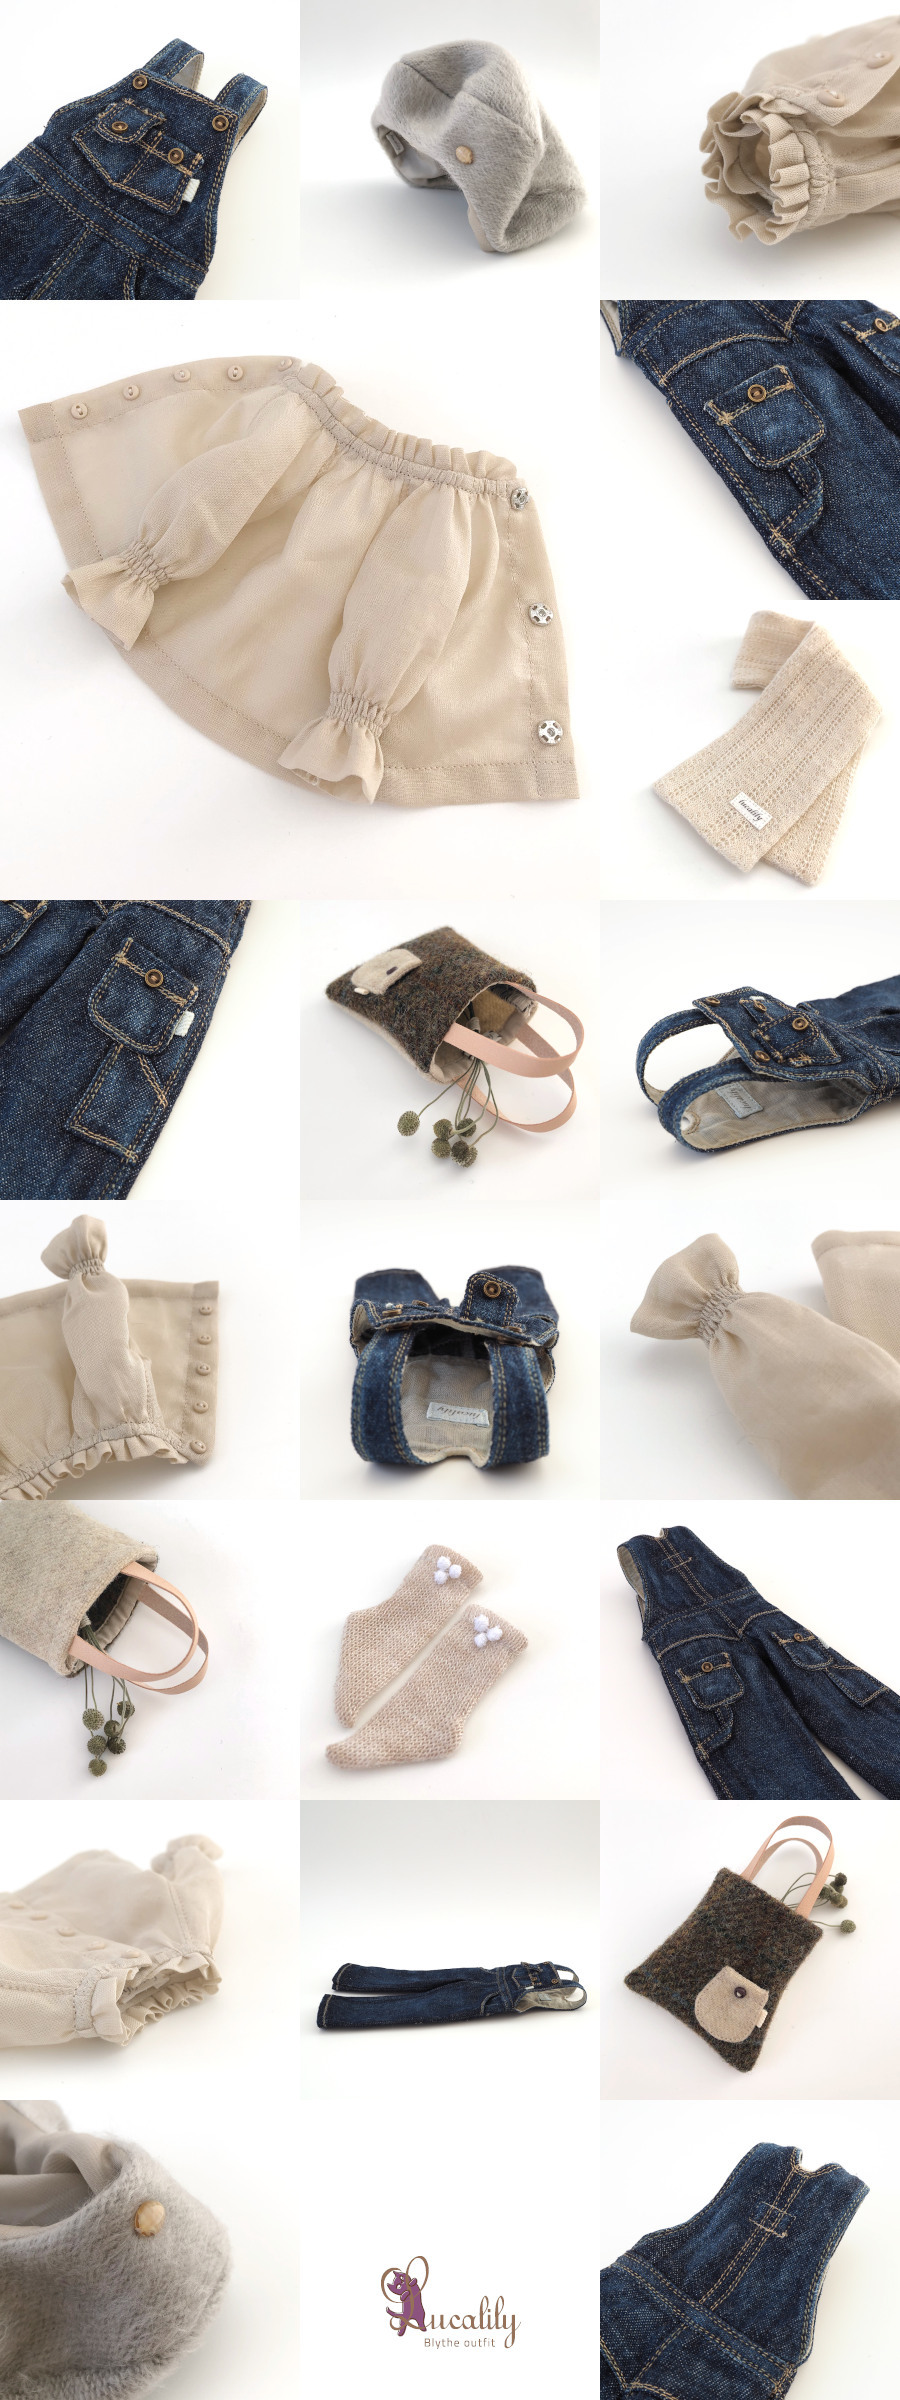 * lucalily * dolls clothes * Overalls set *_d0217189_19441025.jpg